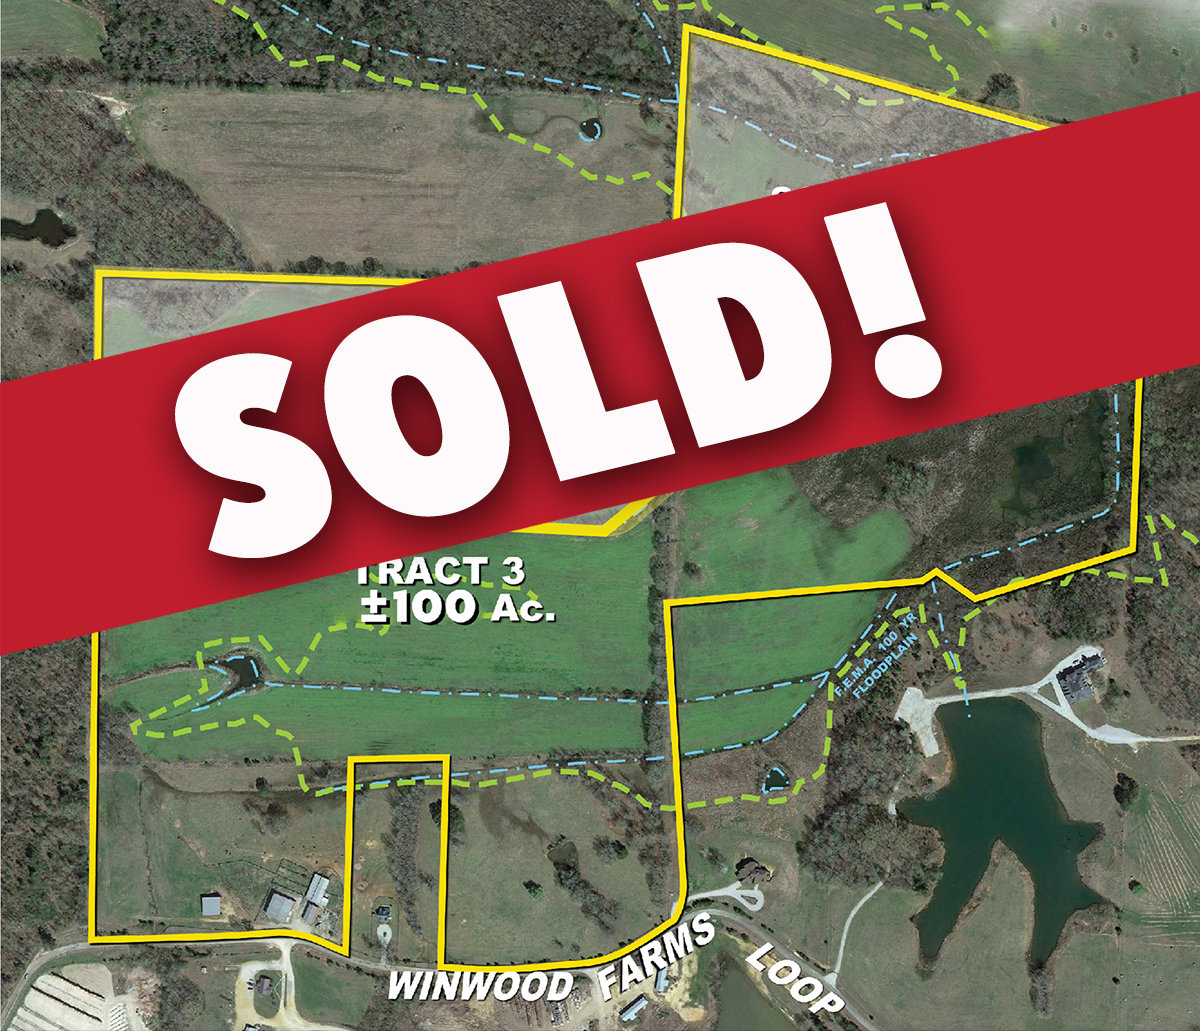 Land for Sale in Hardeman County, Tennessee: 100± Acres of Farmland & More for Sale - Tract 3 on Winwood Farms Loop, Middleton, TN